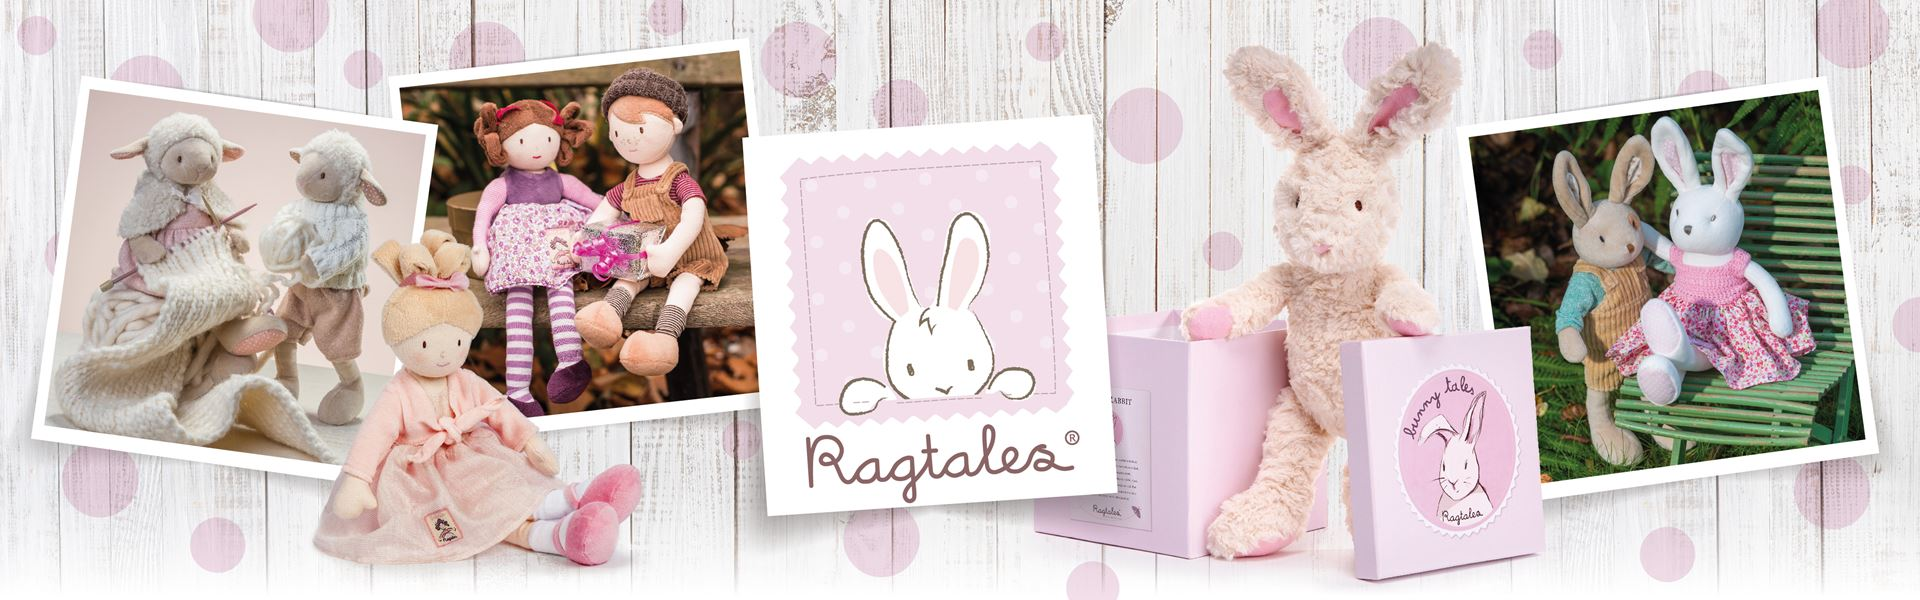 Ragtales Traditional Toys